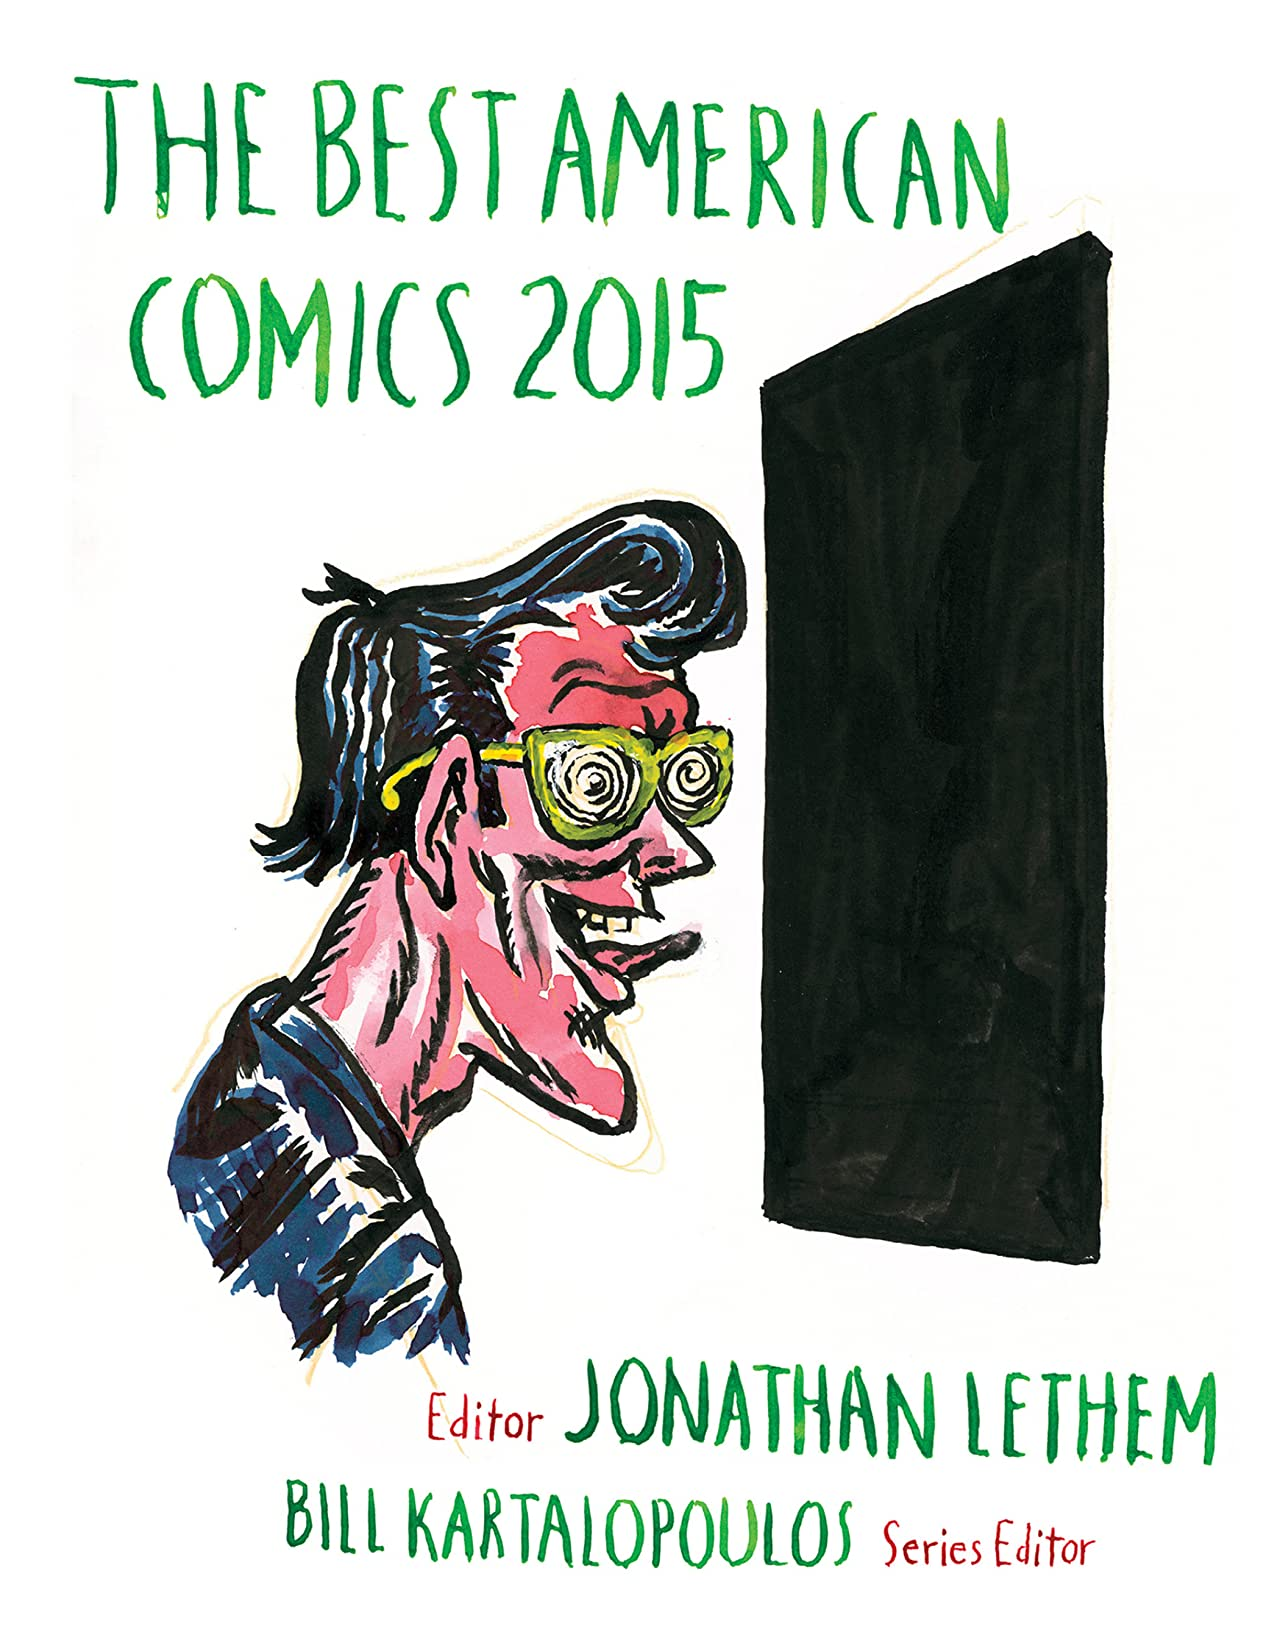 The Best American Comics 2015